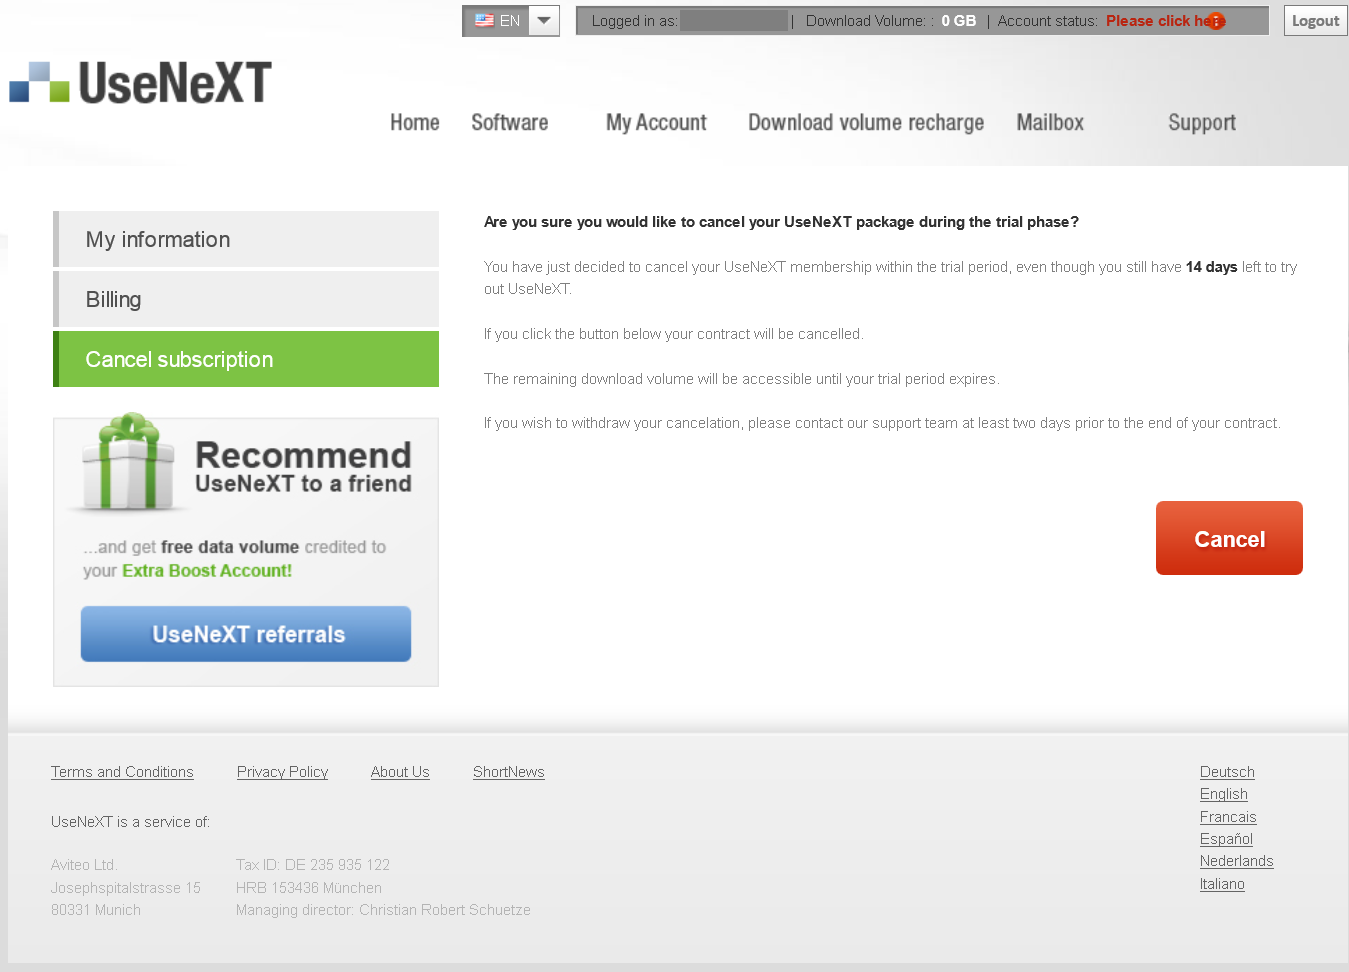 How To Cancel UseNeXT, Before The Trial Expires